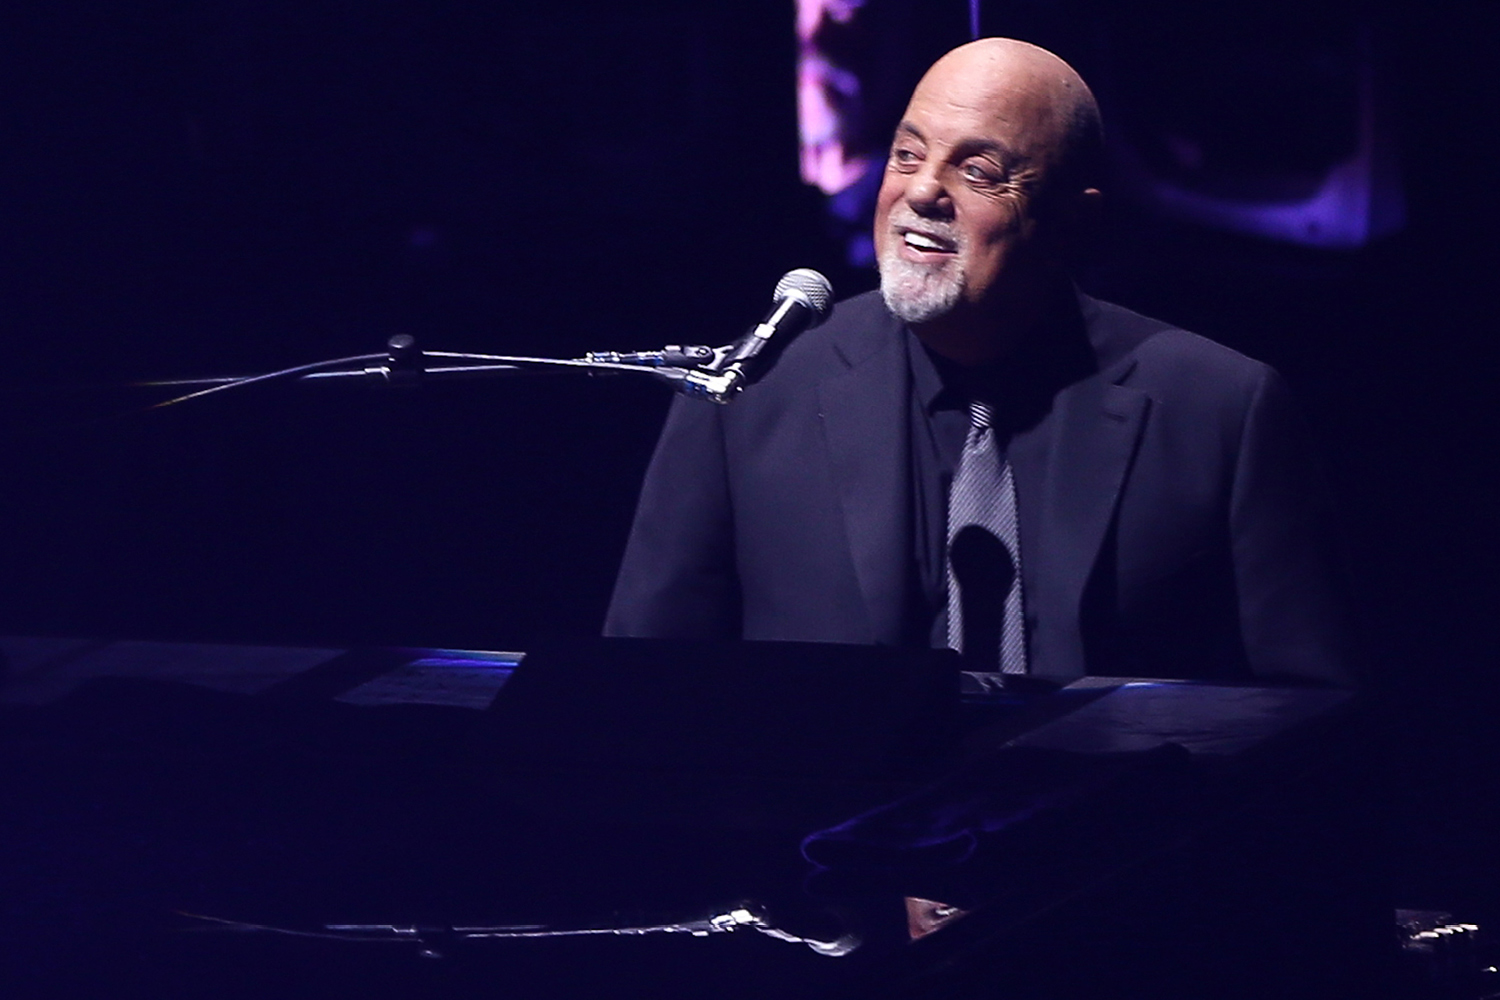 Billy Joel Performs The Beatles